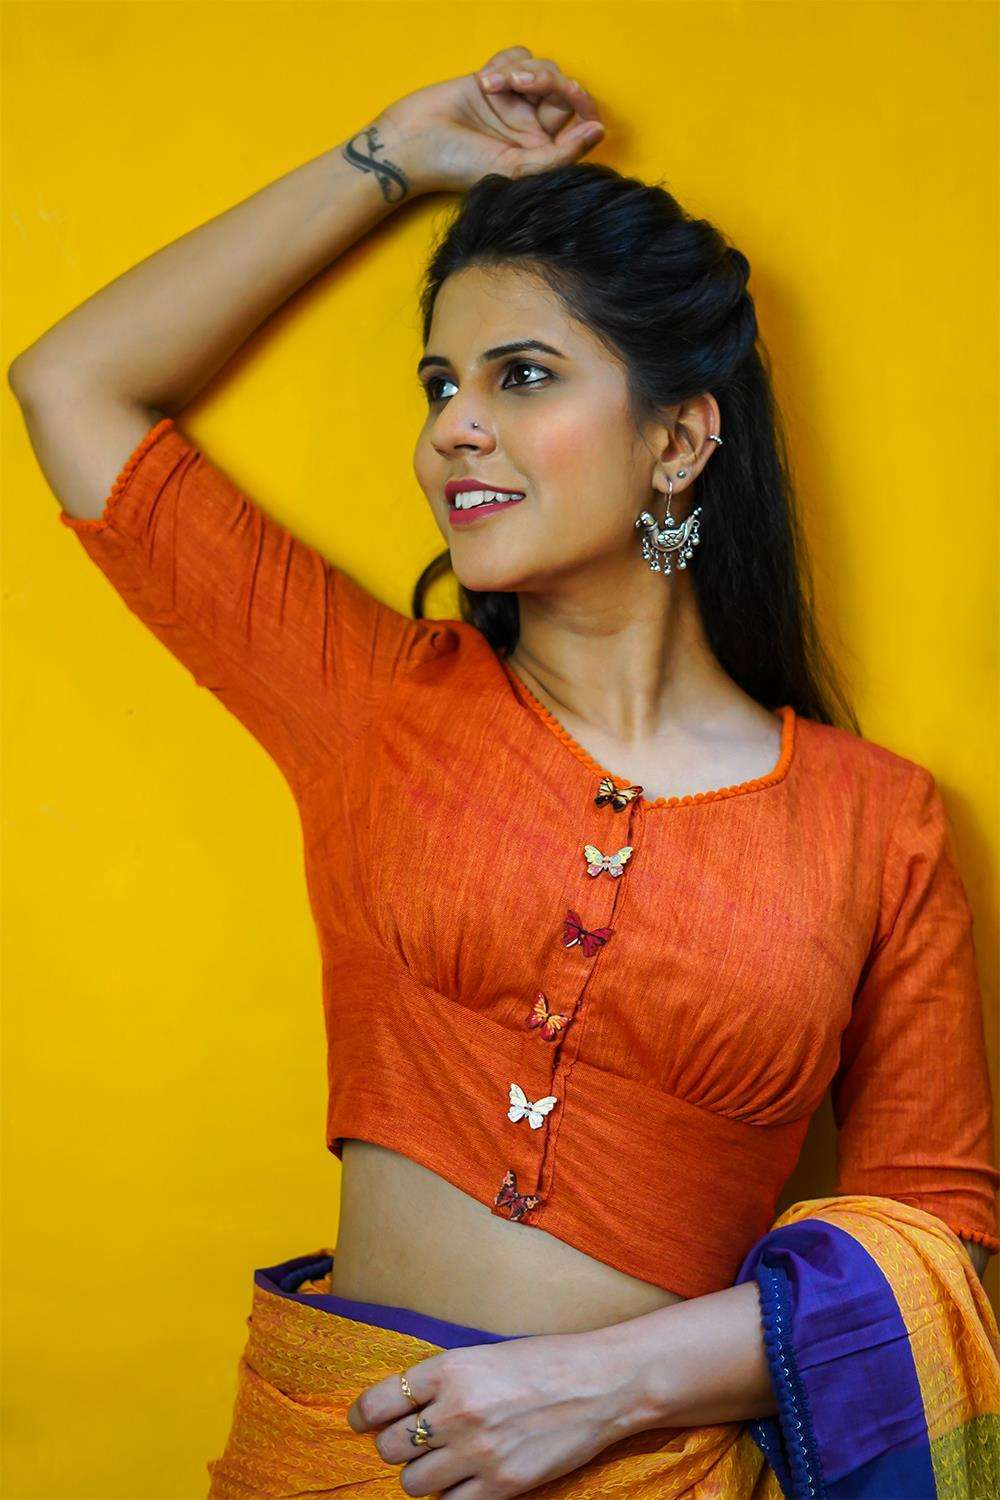 Orange khadi rounded V neck blouse with orange pom pom edging